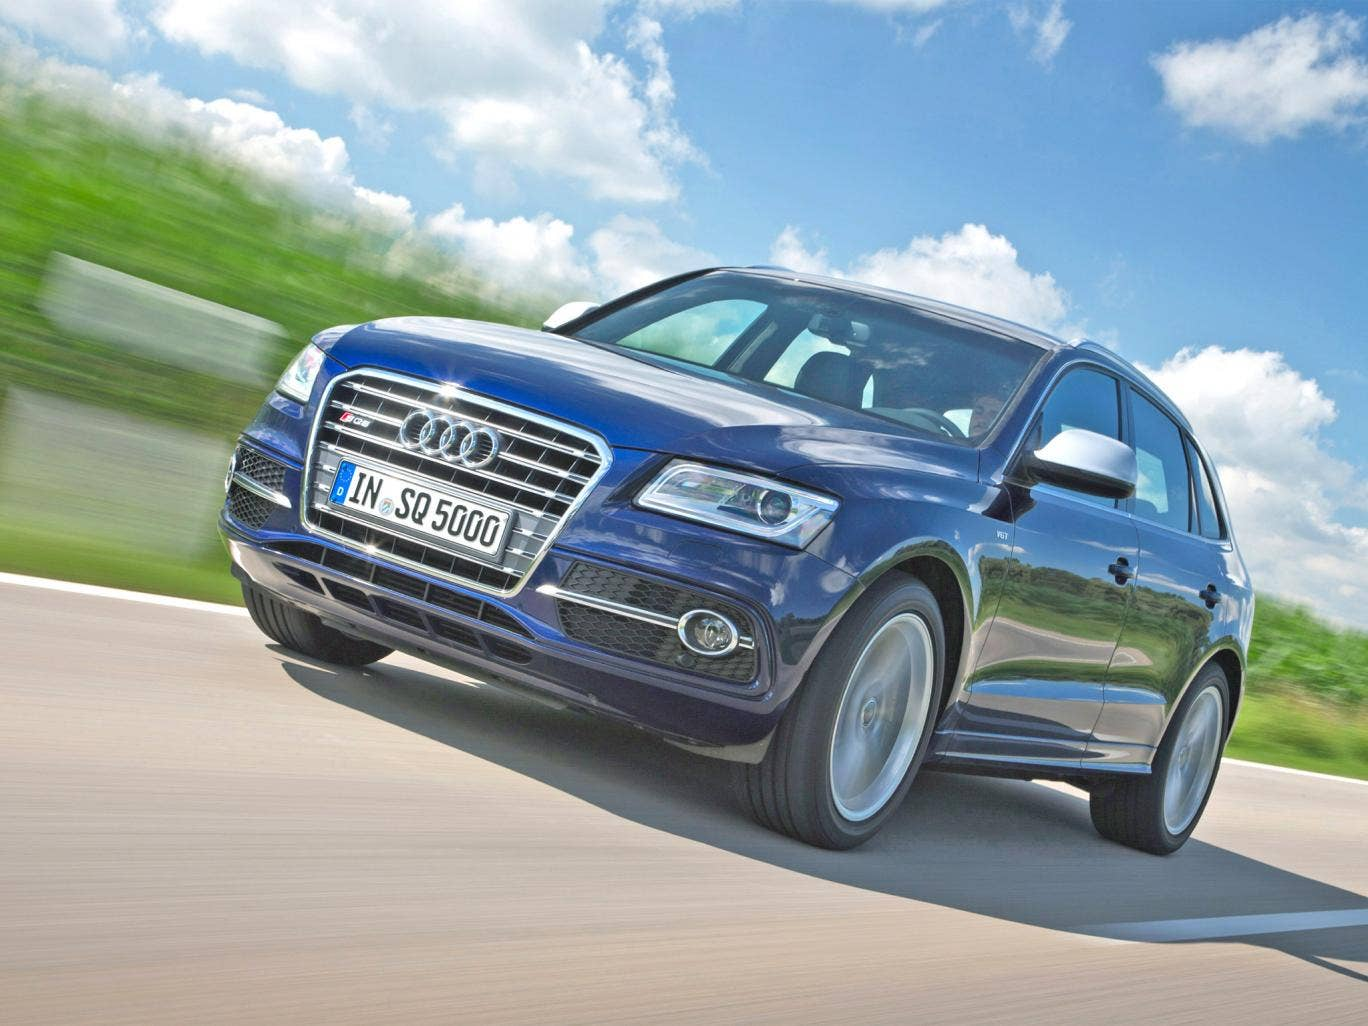 Chuffing quick: the new Audi SQ5